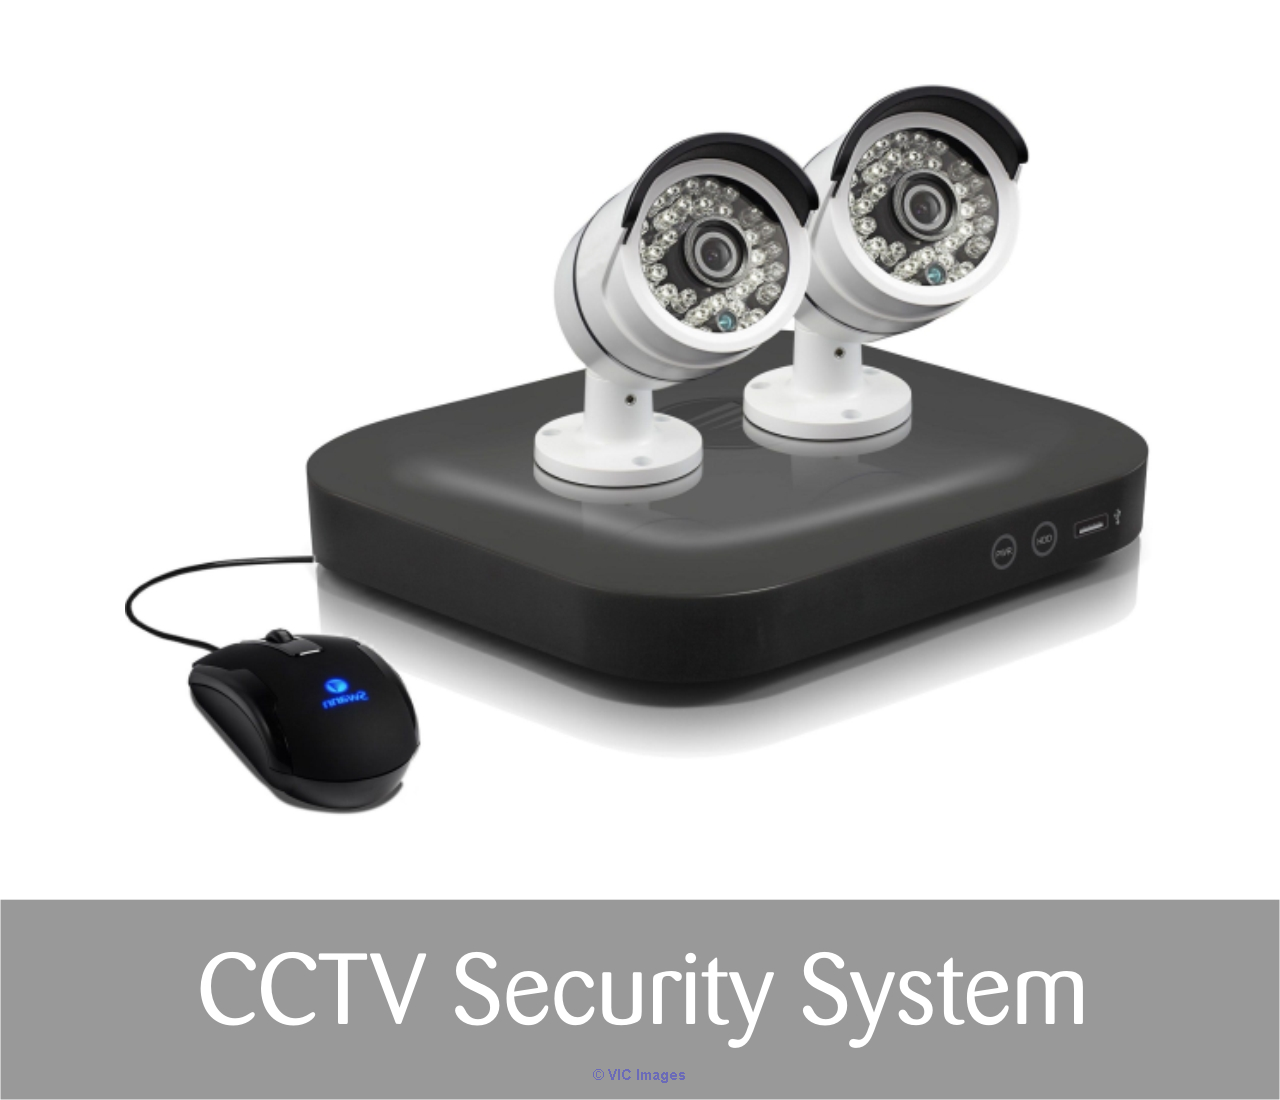 Vaya Technologies-CCTV Security System, Fire Alarms Systems, Udaipur Ottawa, Ontario, Canada Classifieds